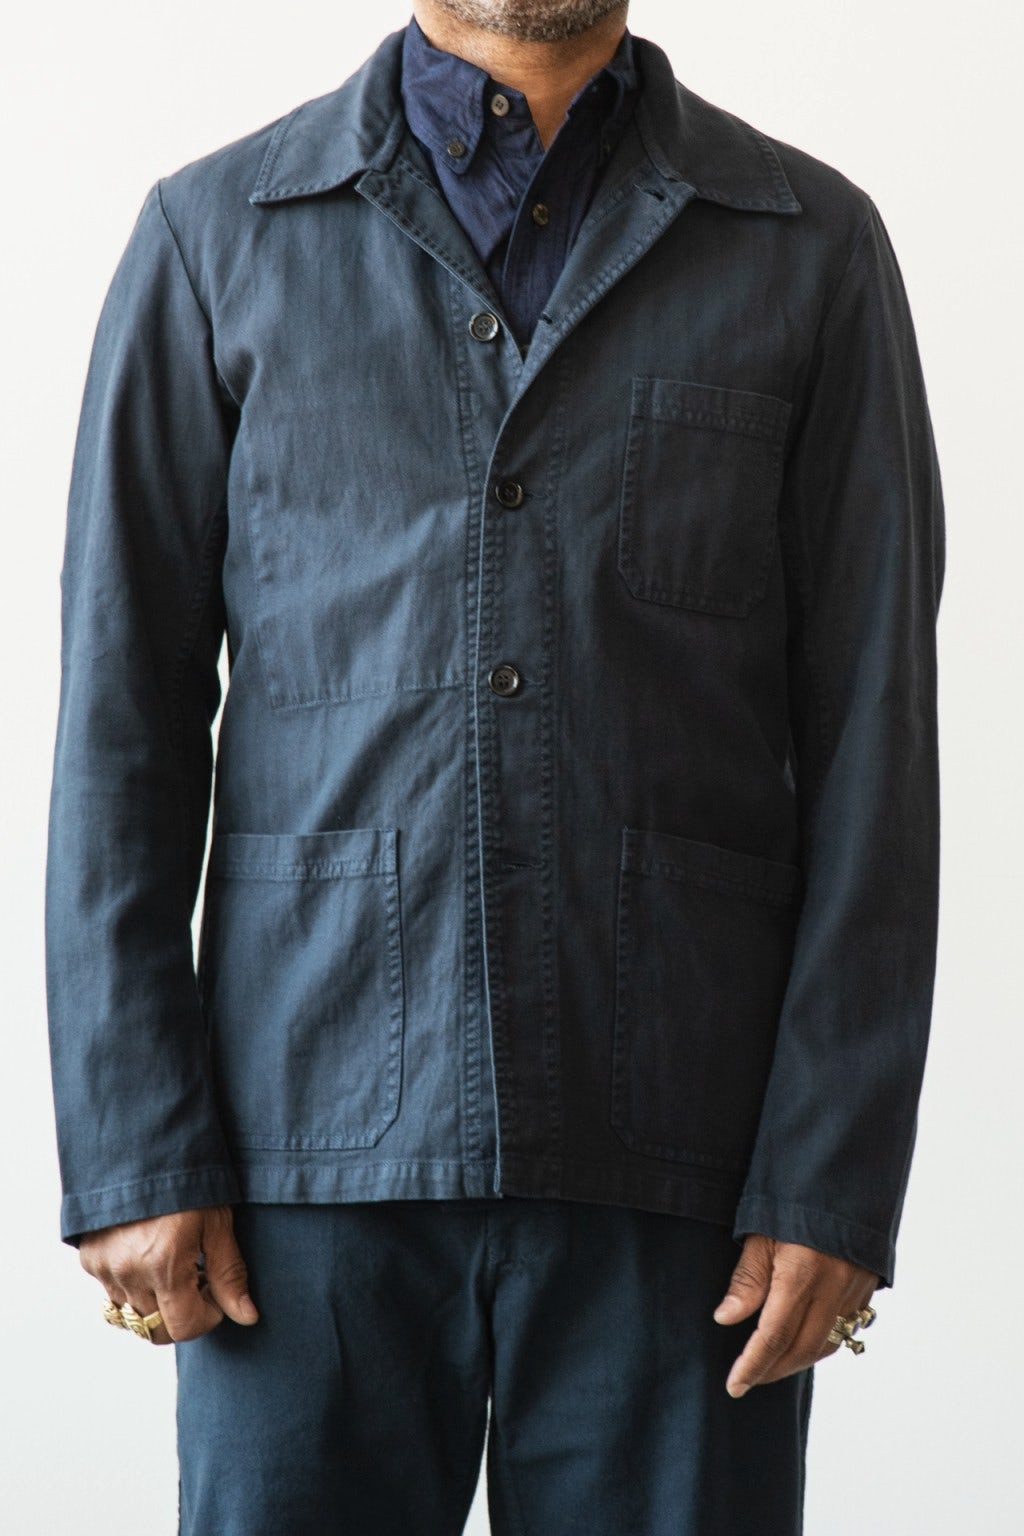 Vetra Chore Coat Navy Herringbone